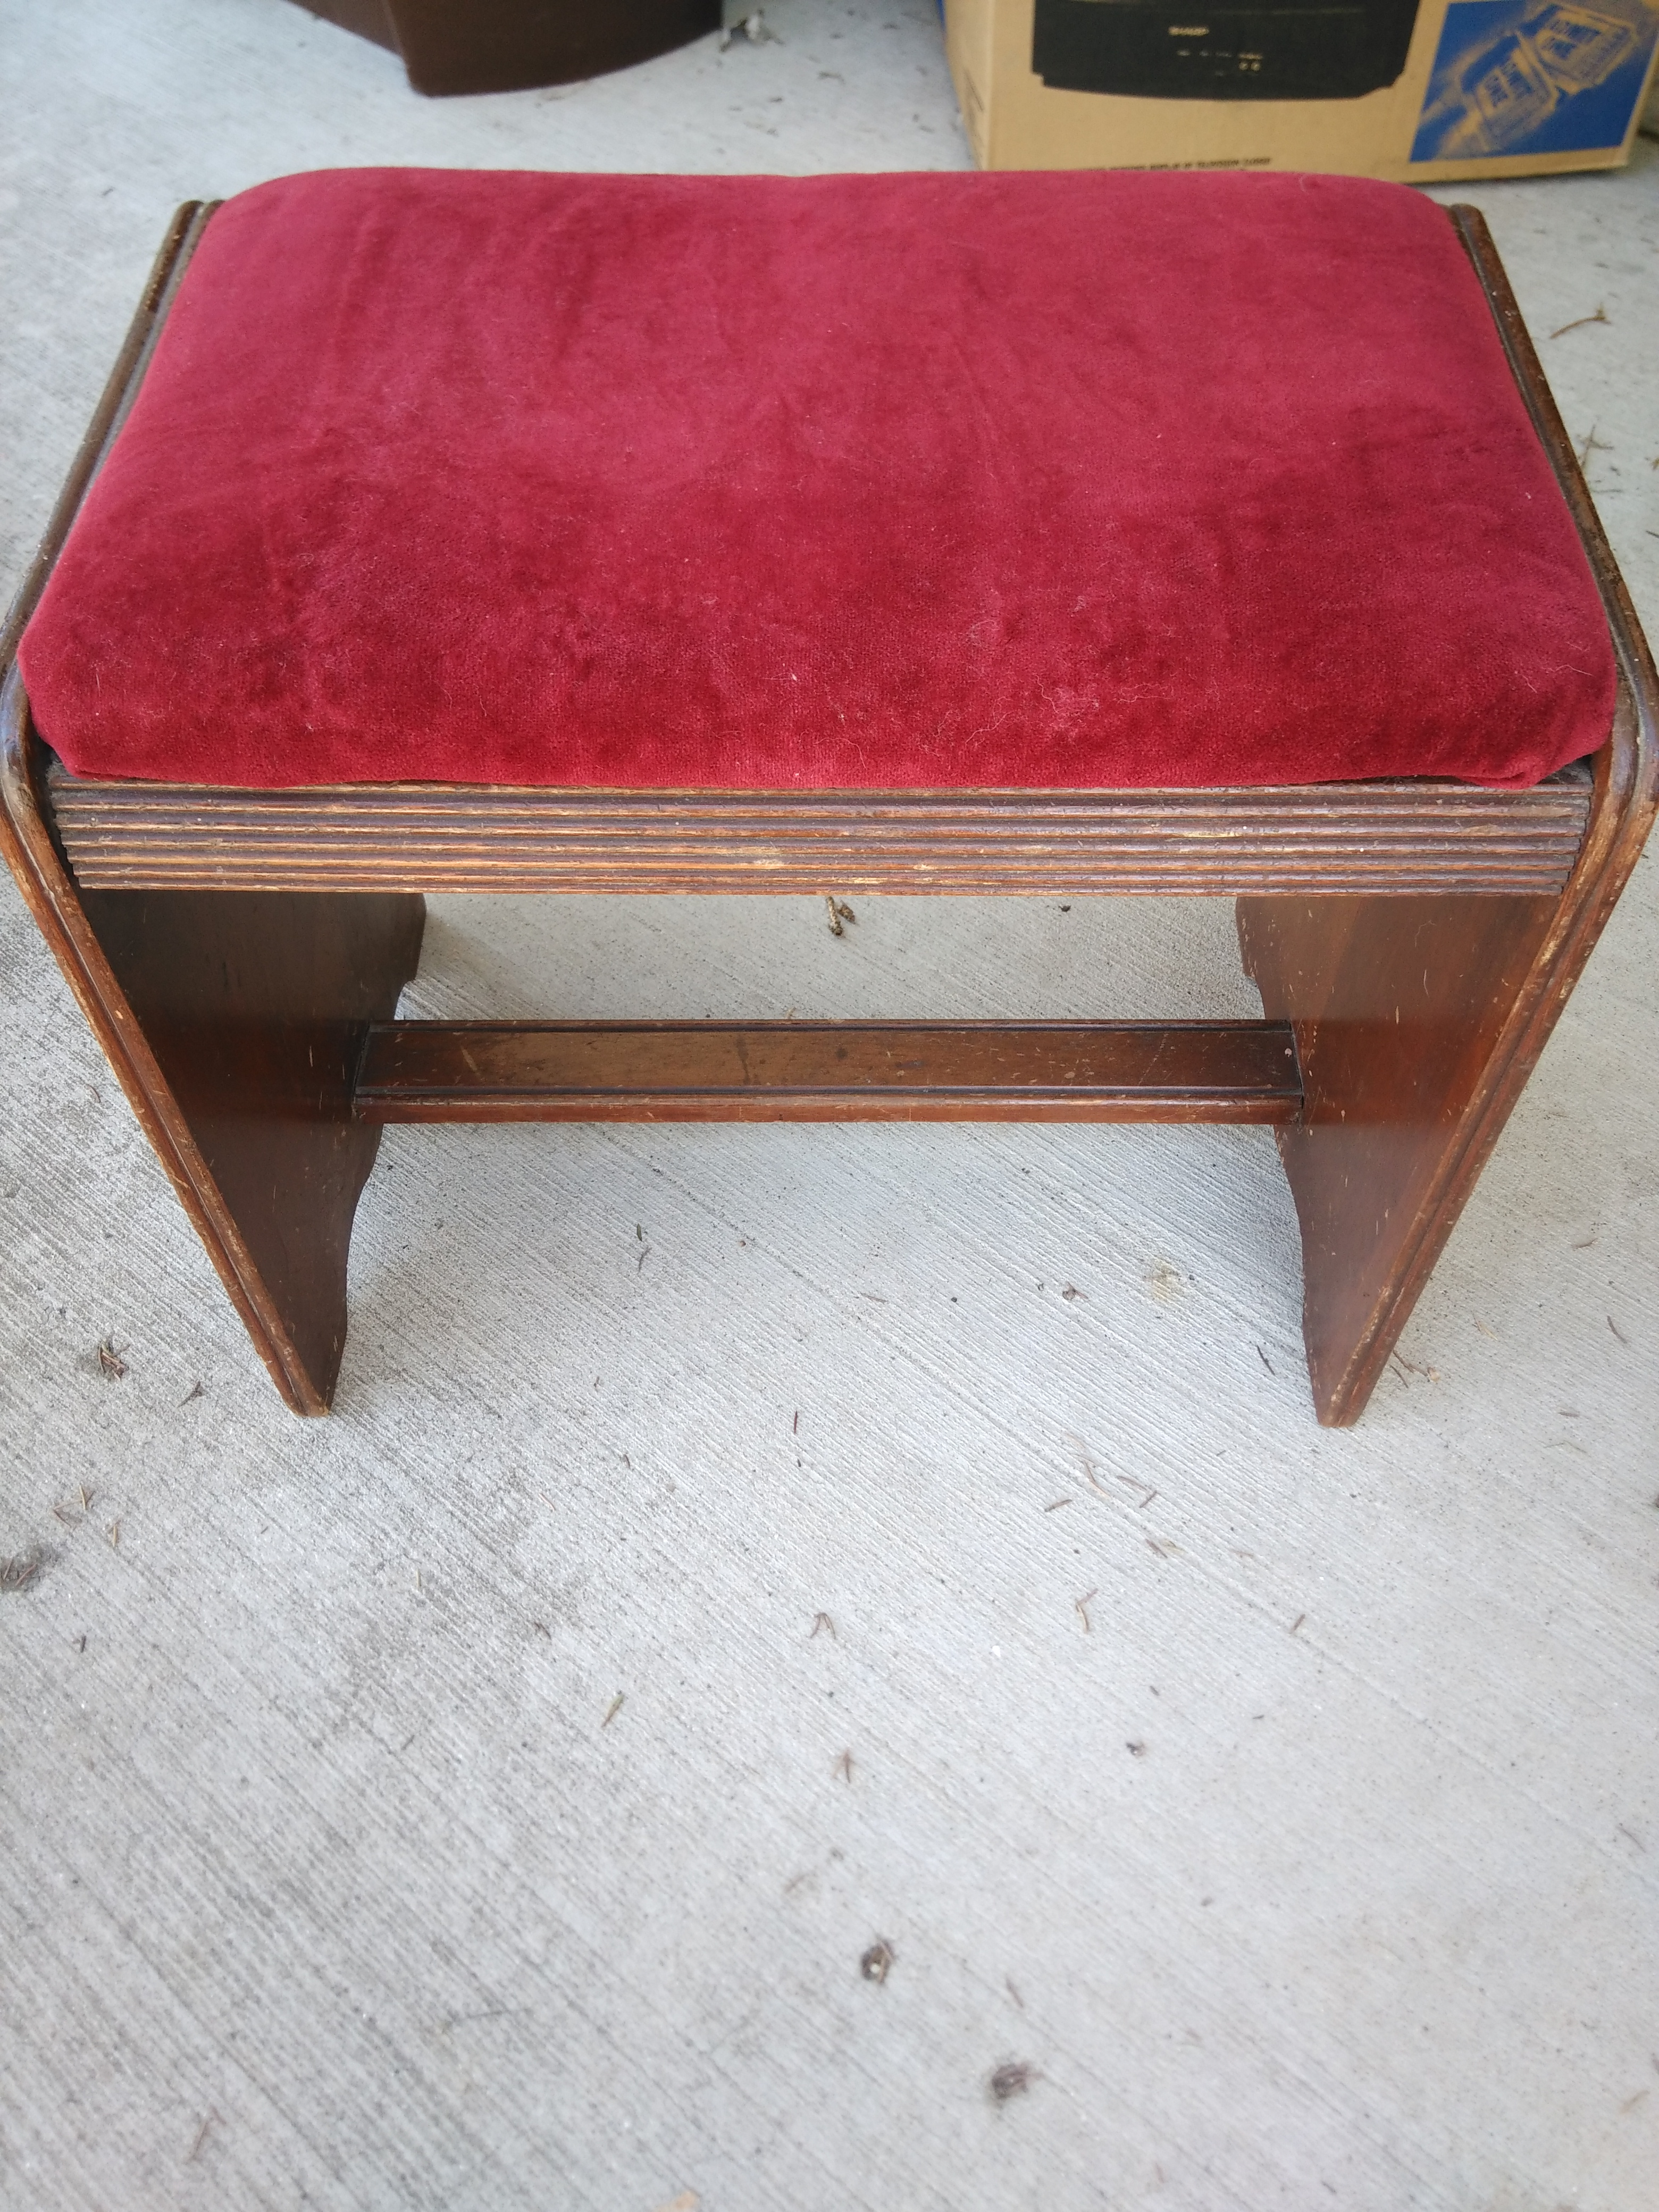 Vanity Bench For Sale Antique Vanity Bench For Sale Antiques Classifieds